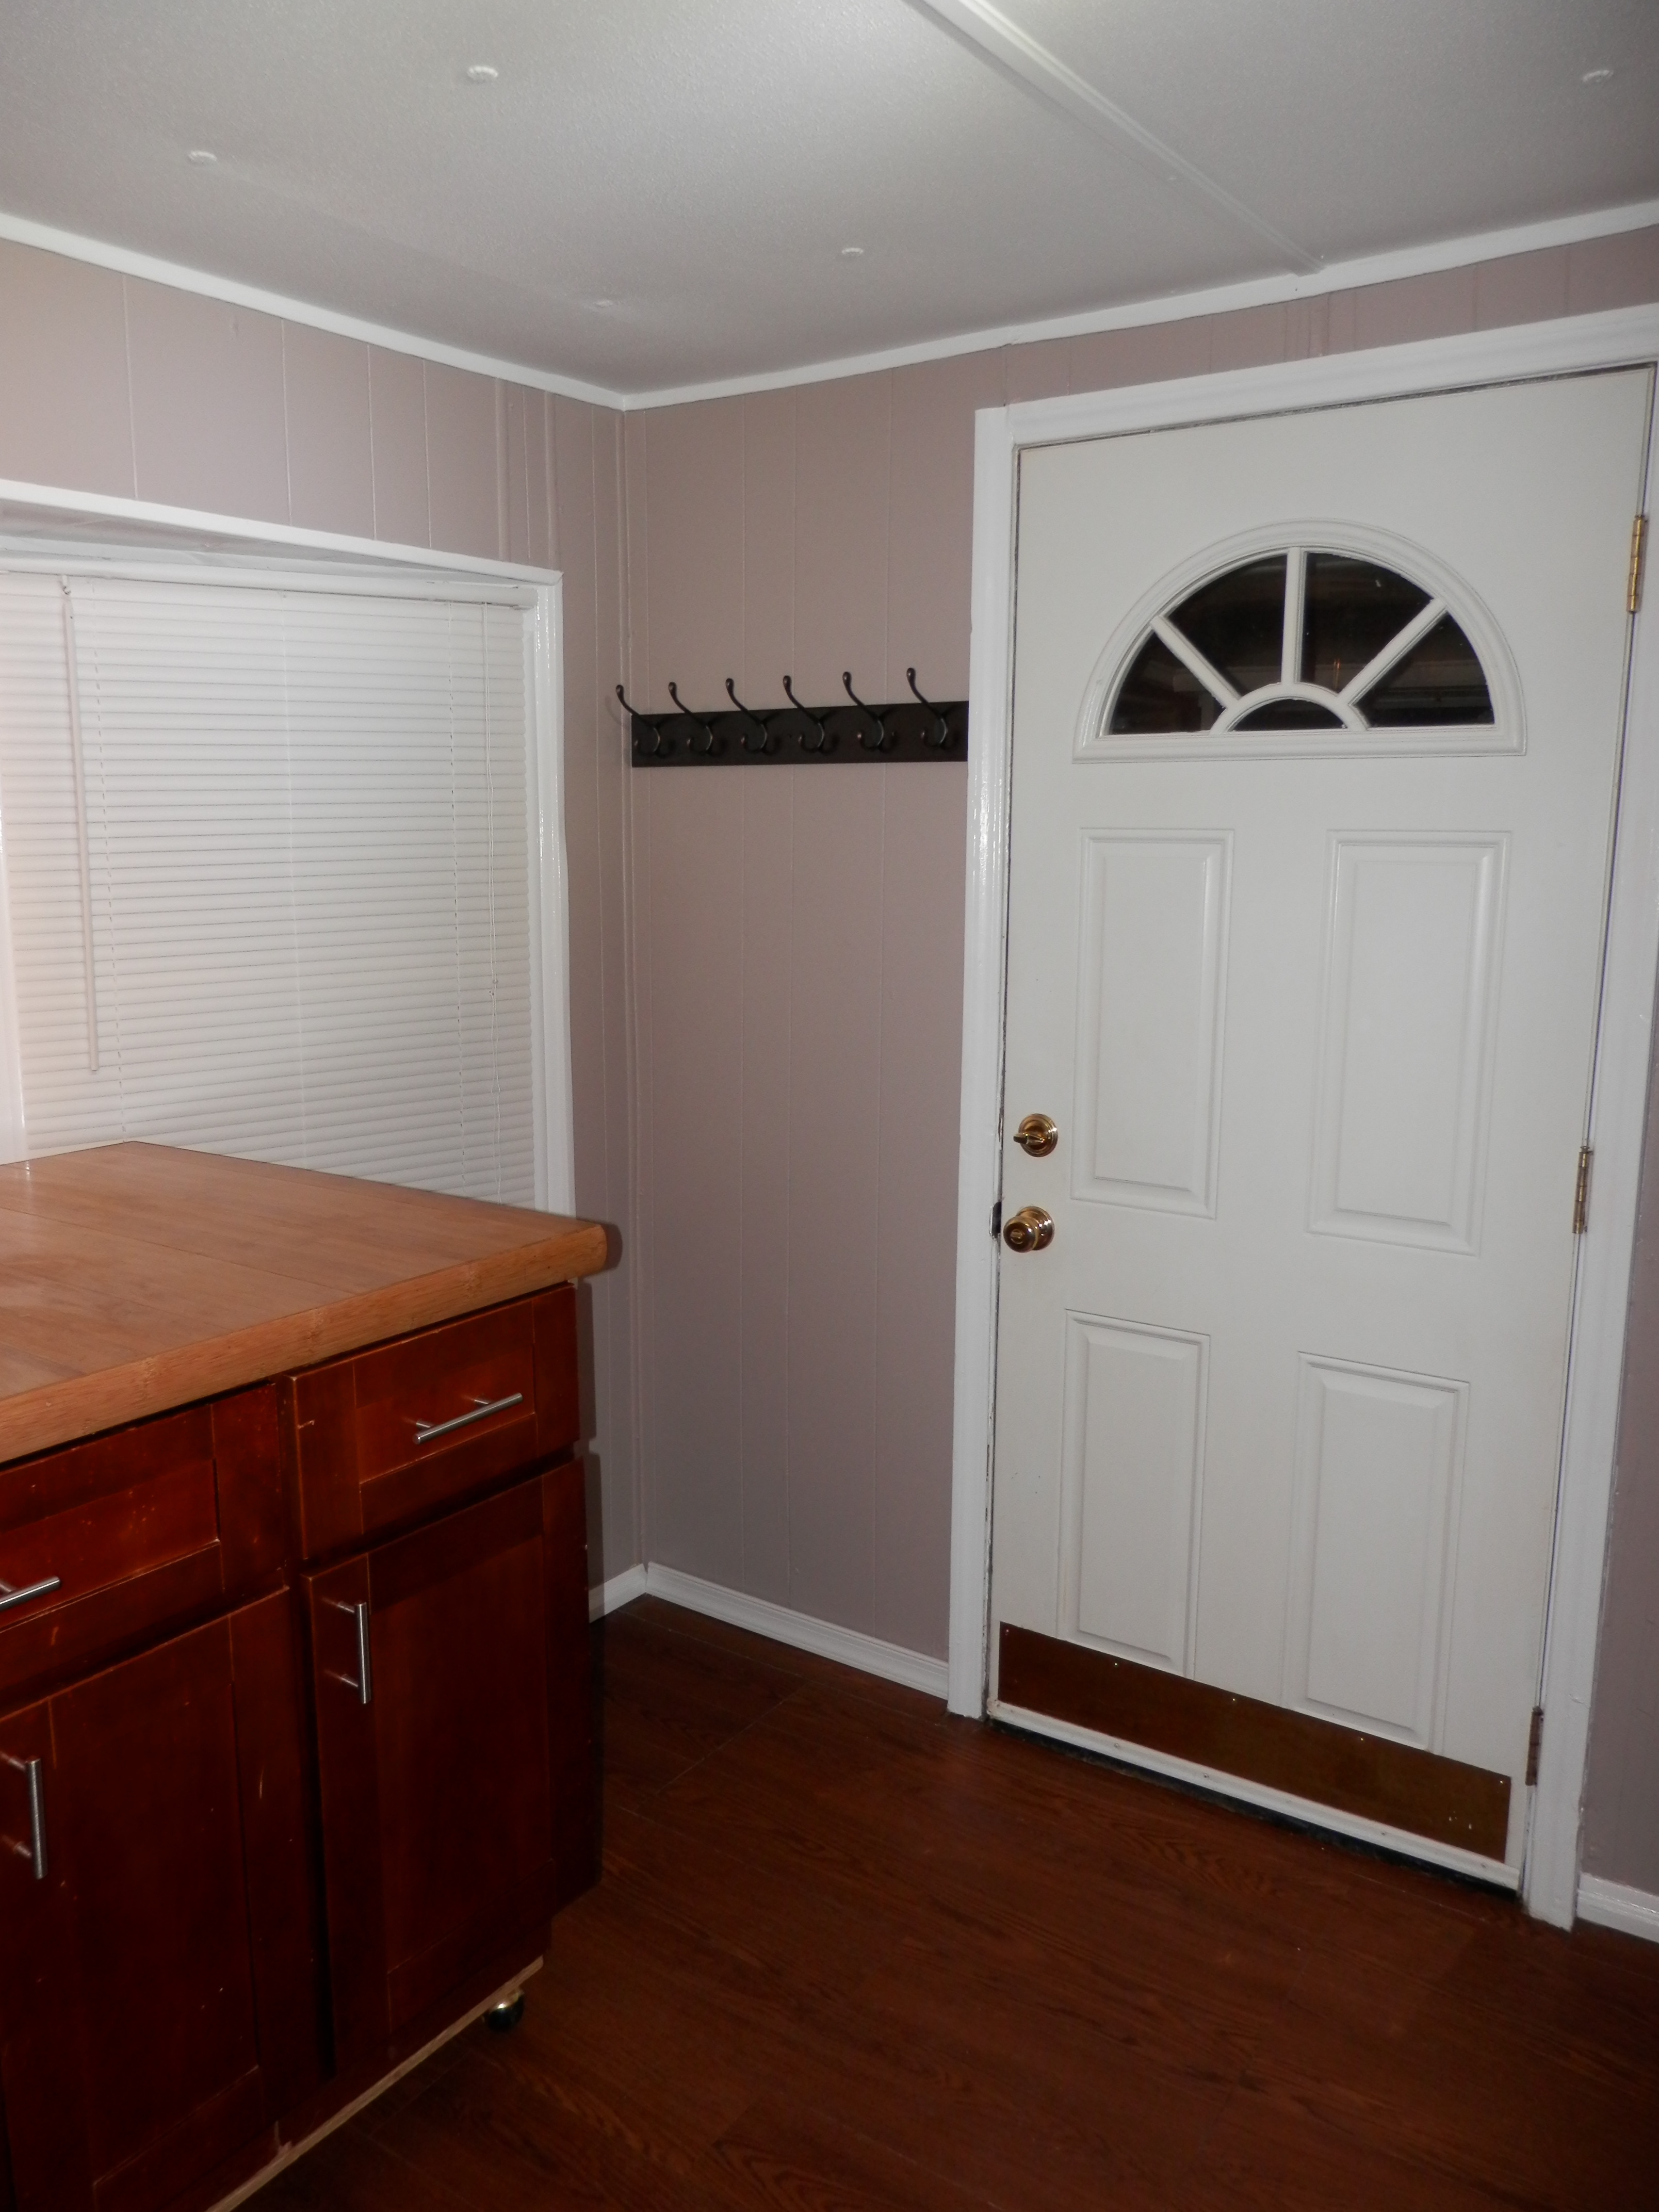 Door after mobile home remodel images frompo Home redesign